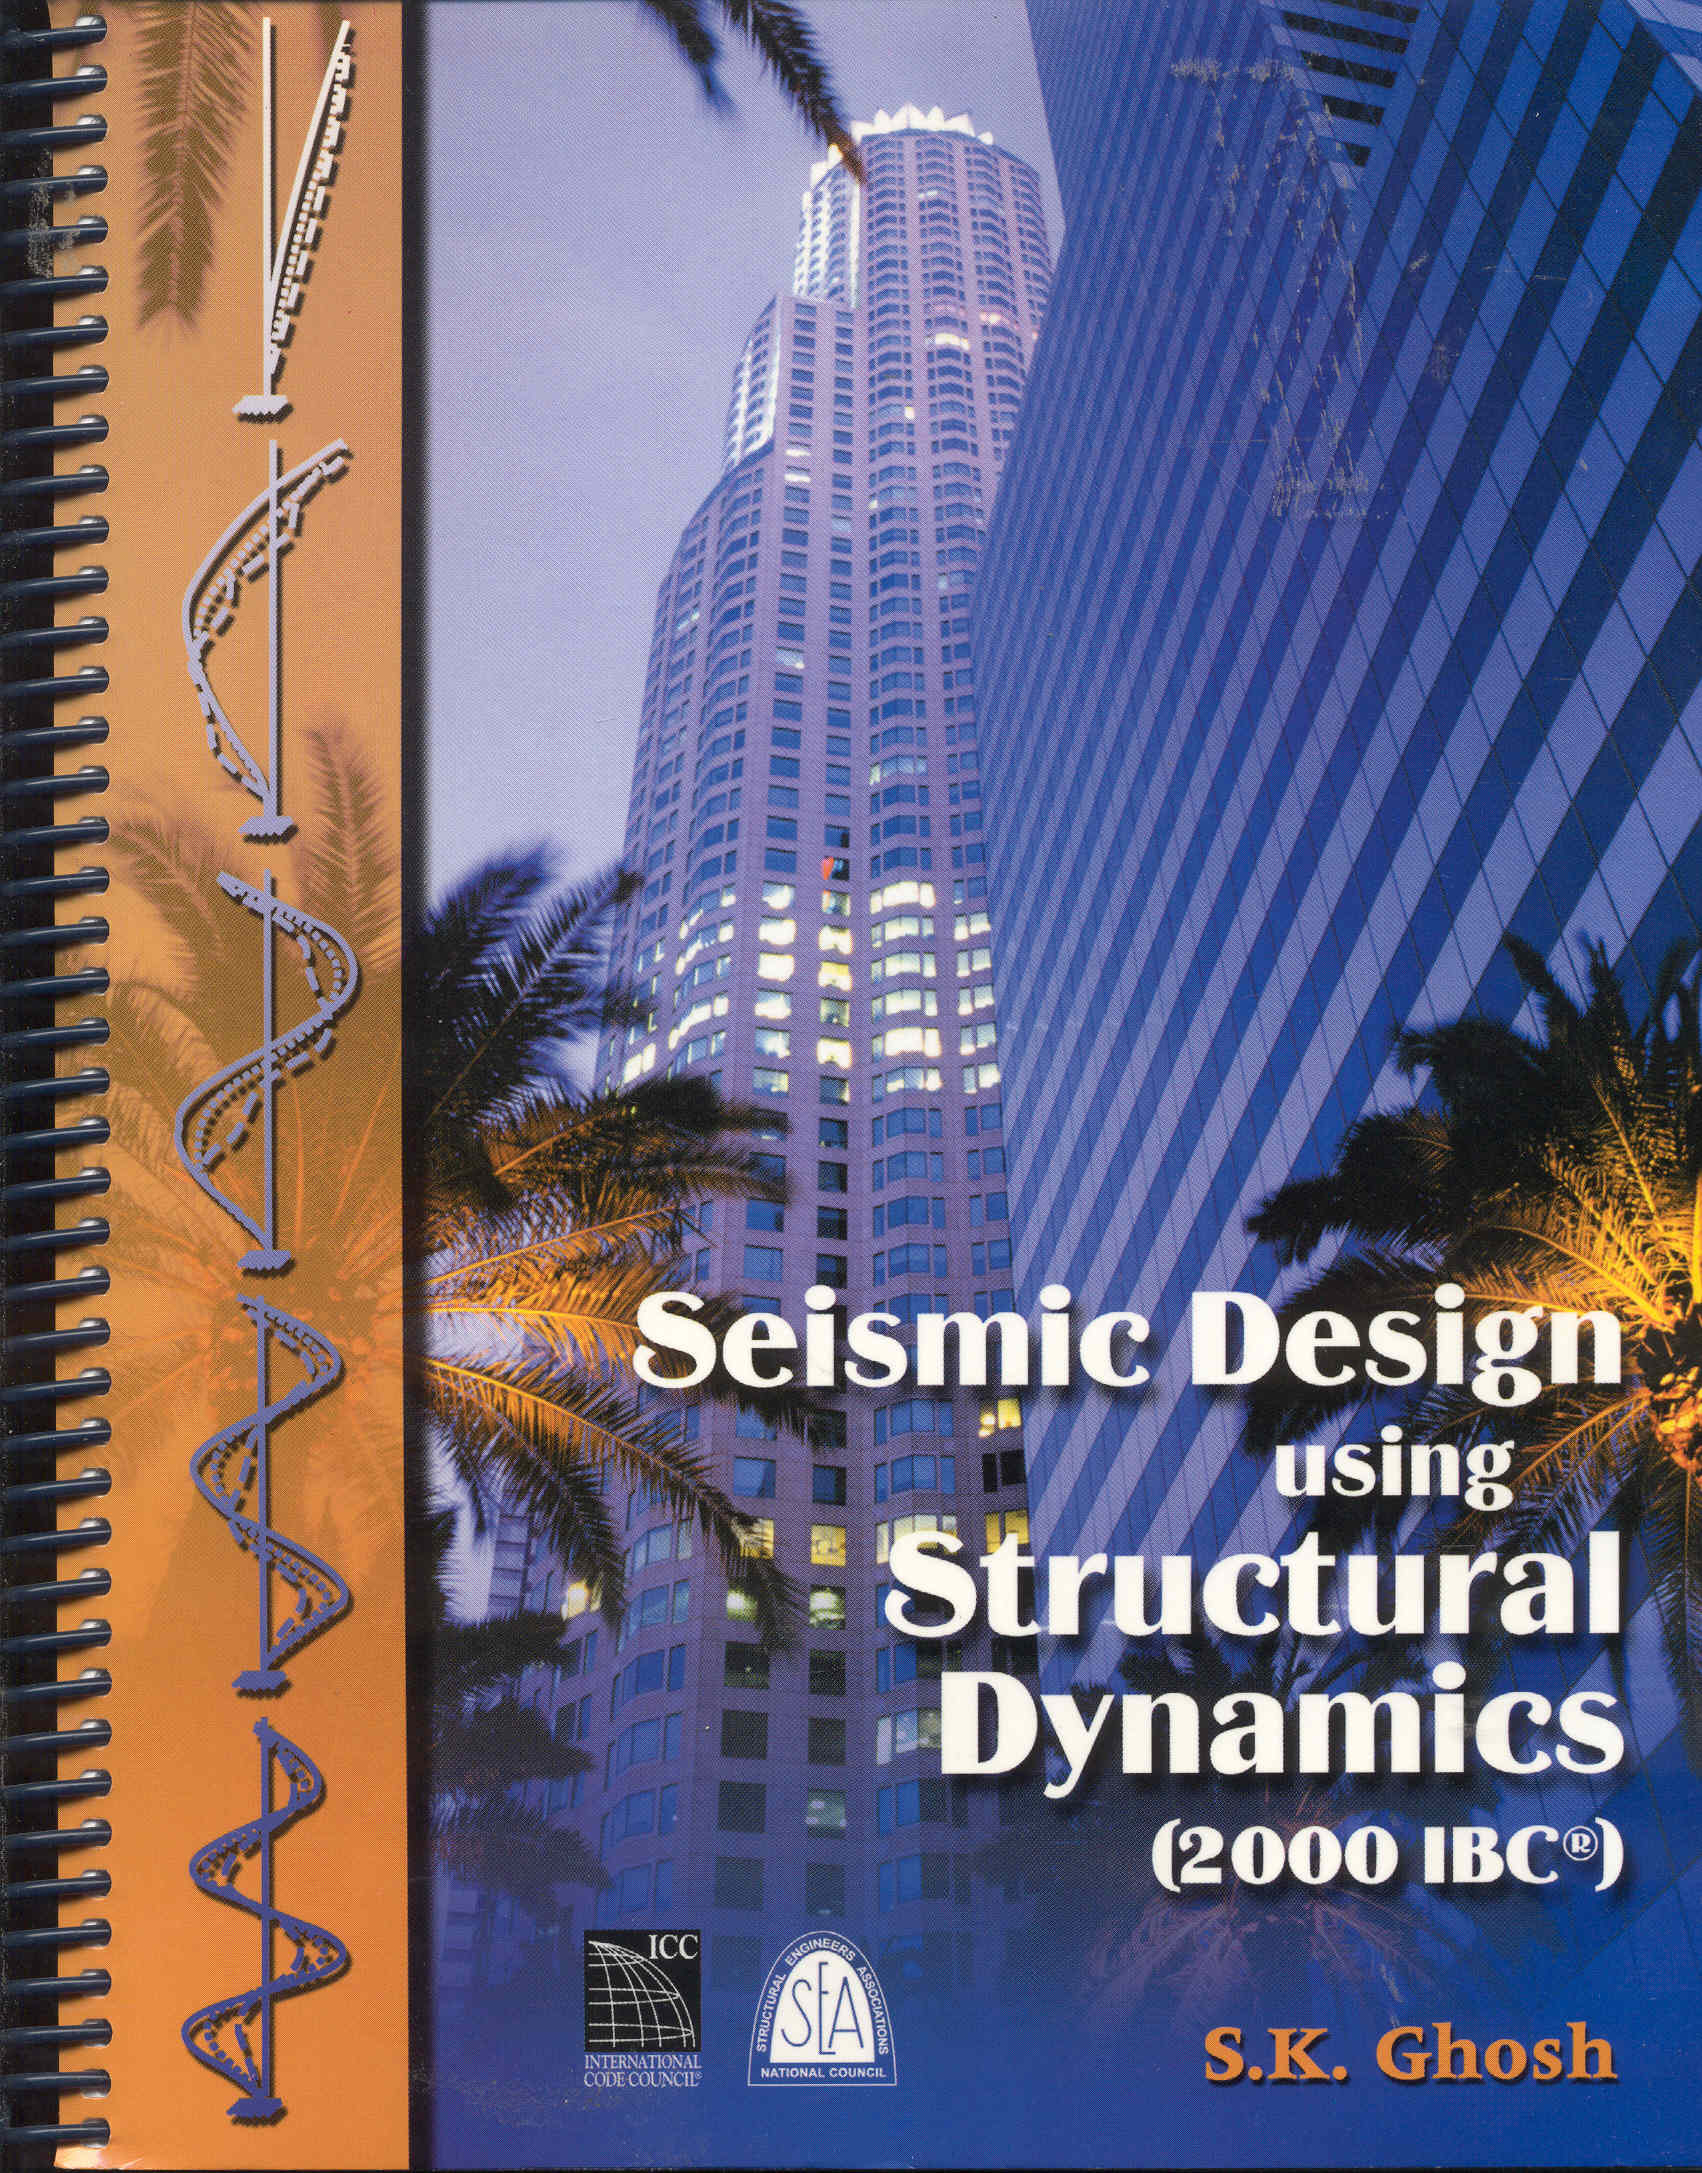 Image for Seismic Design Using Structural Dynamics (2000 UBC)